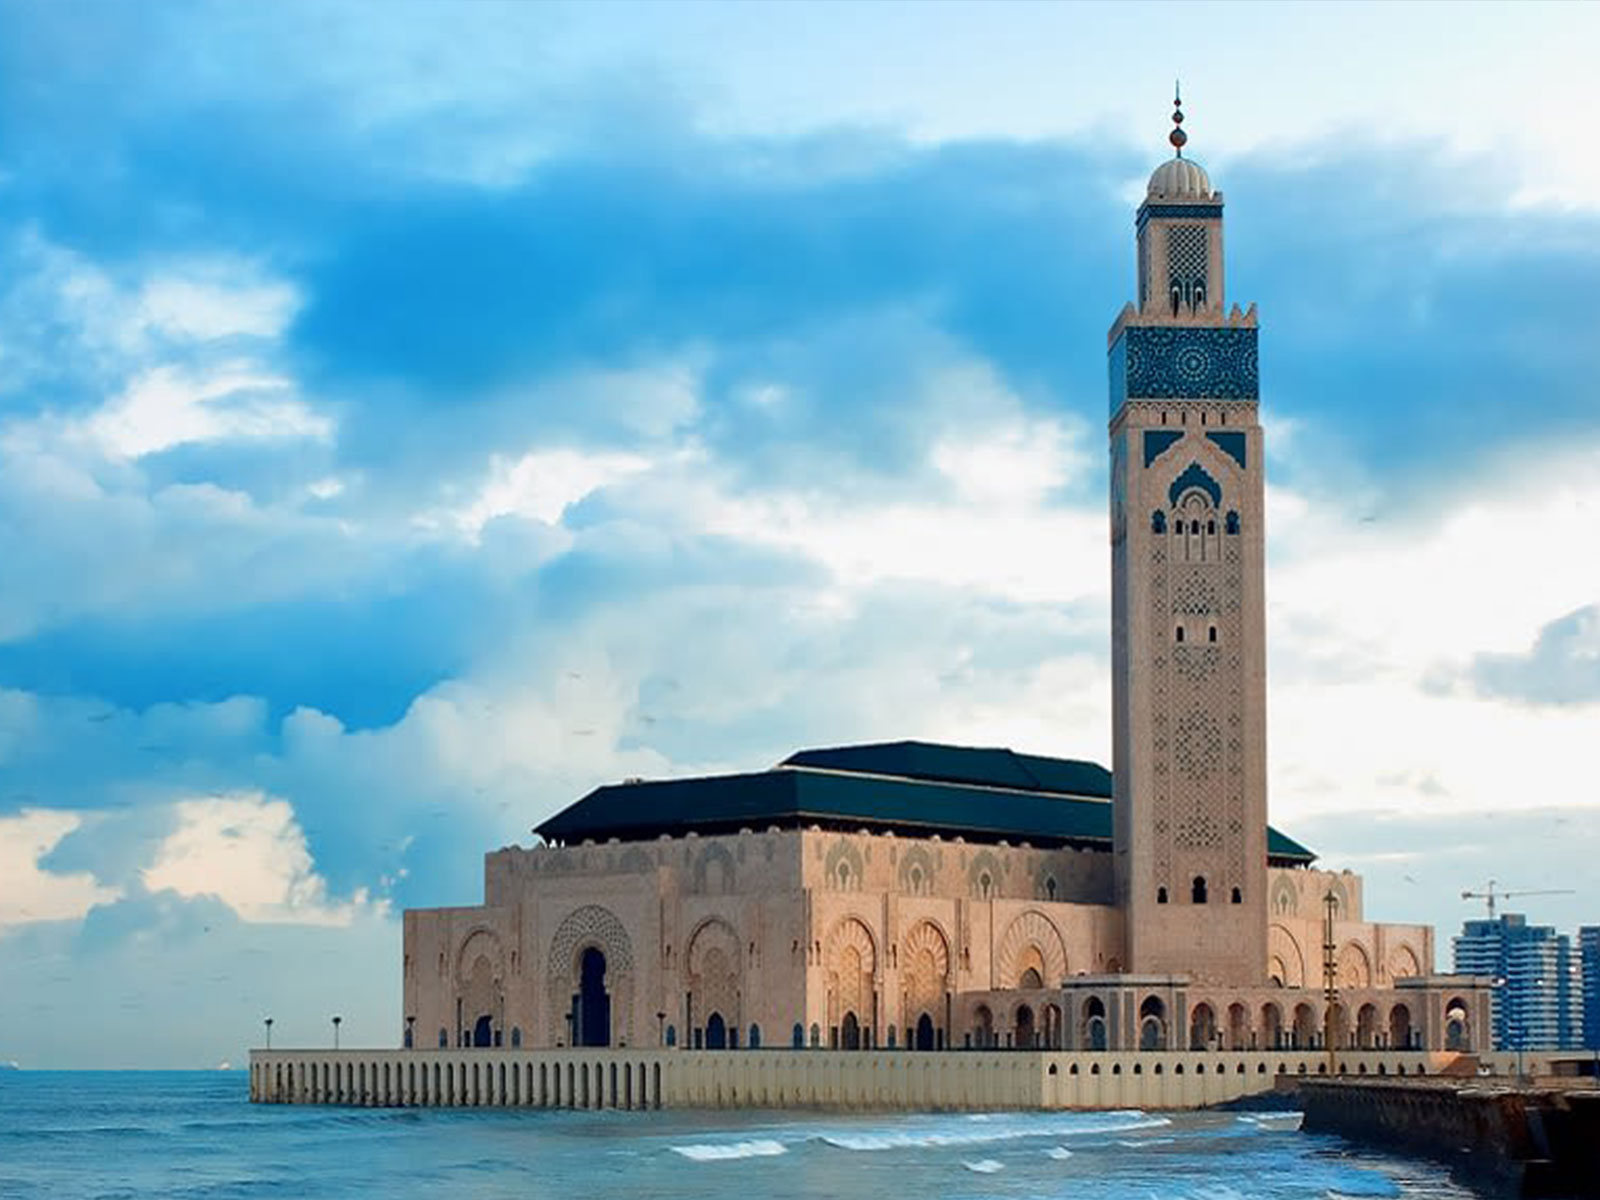 Full day tour to Casablanca departing from Marrakech